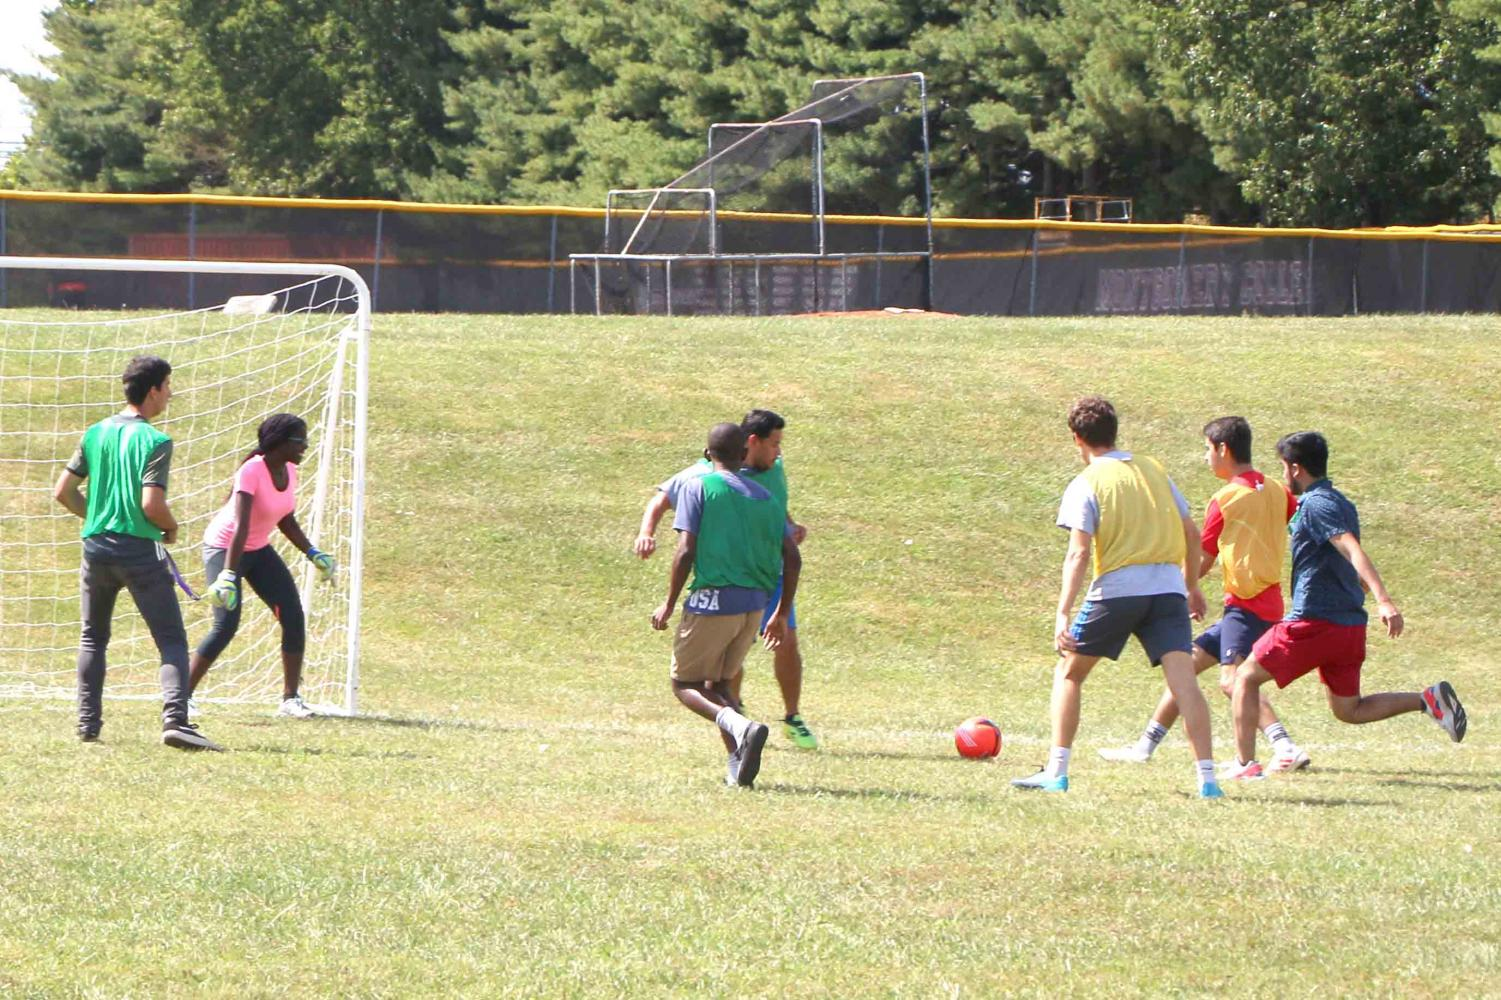 Students attacking for the ball during a friendly green vs. yellow match.